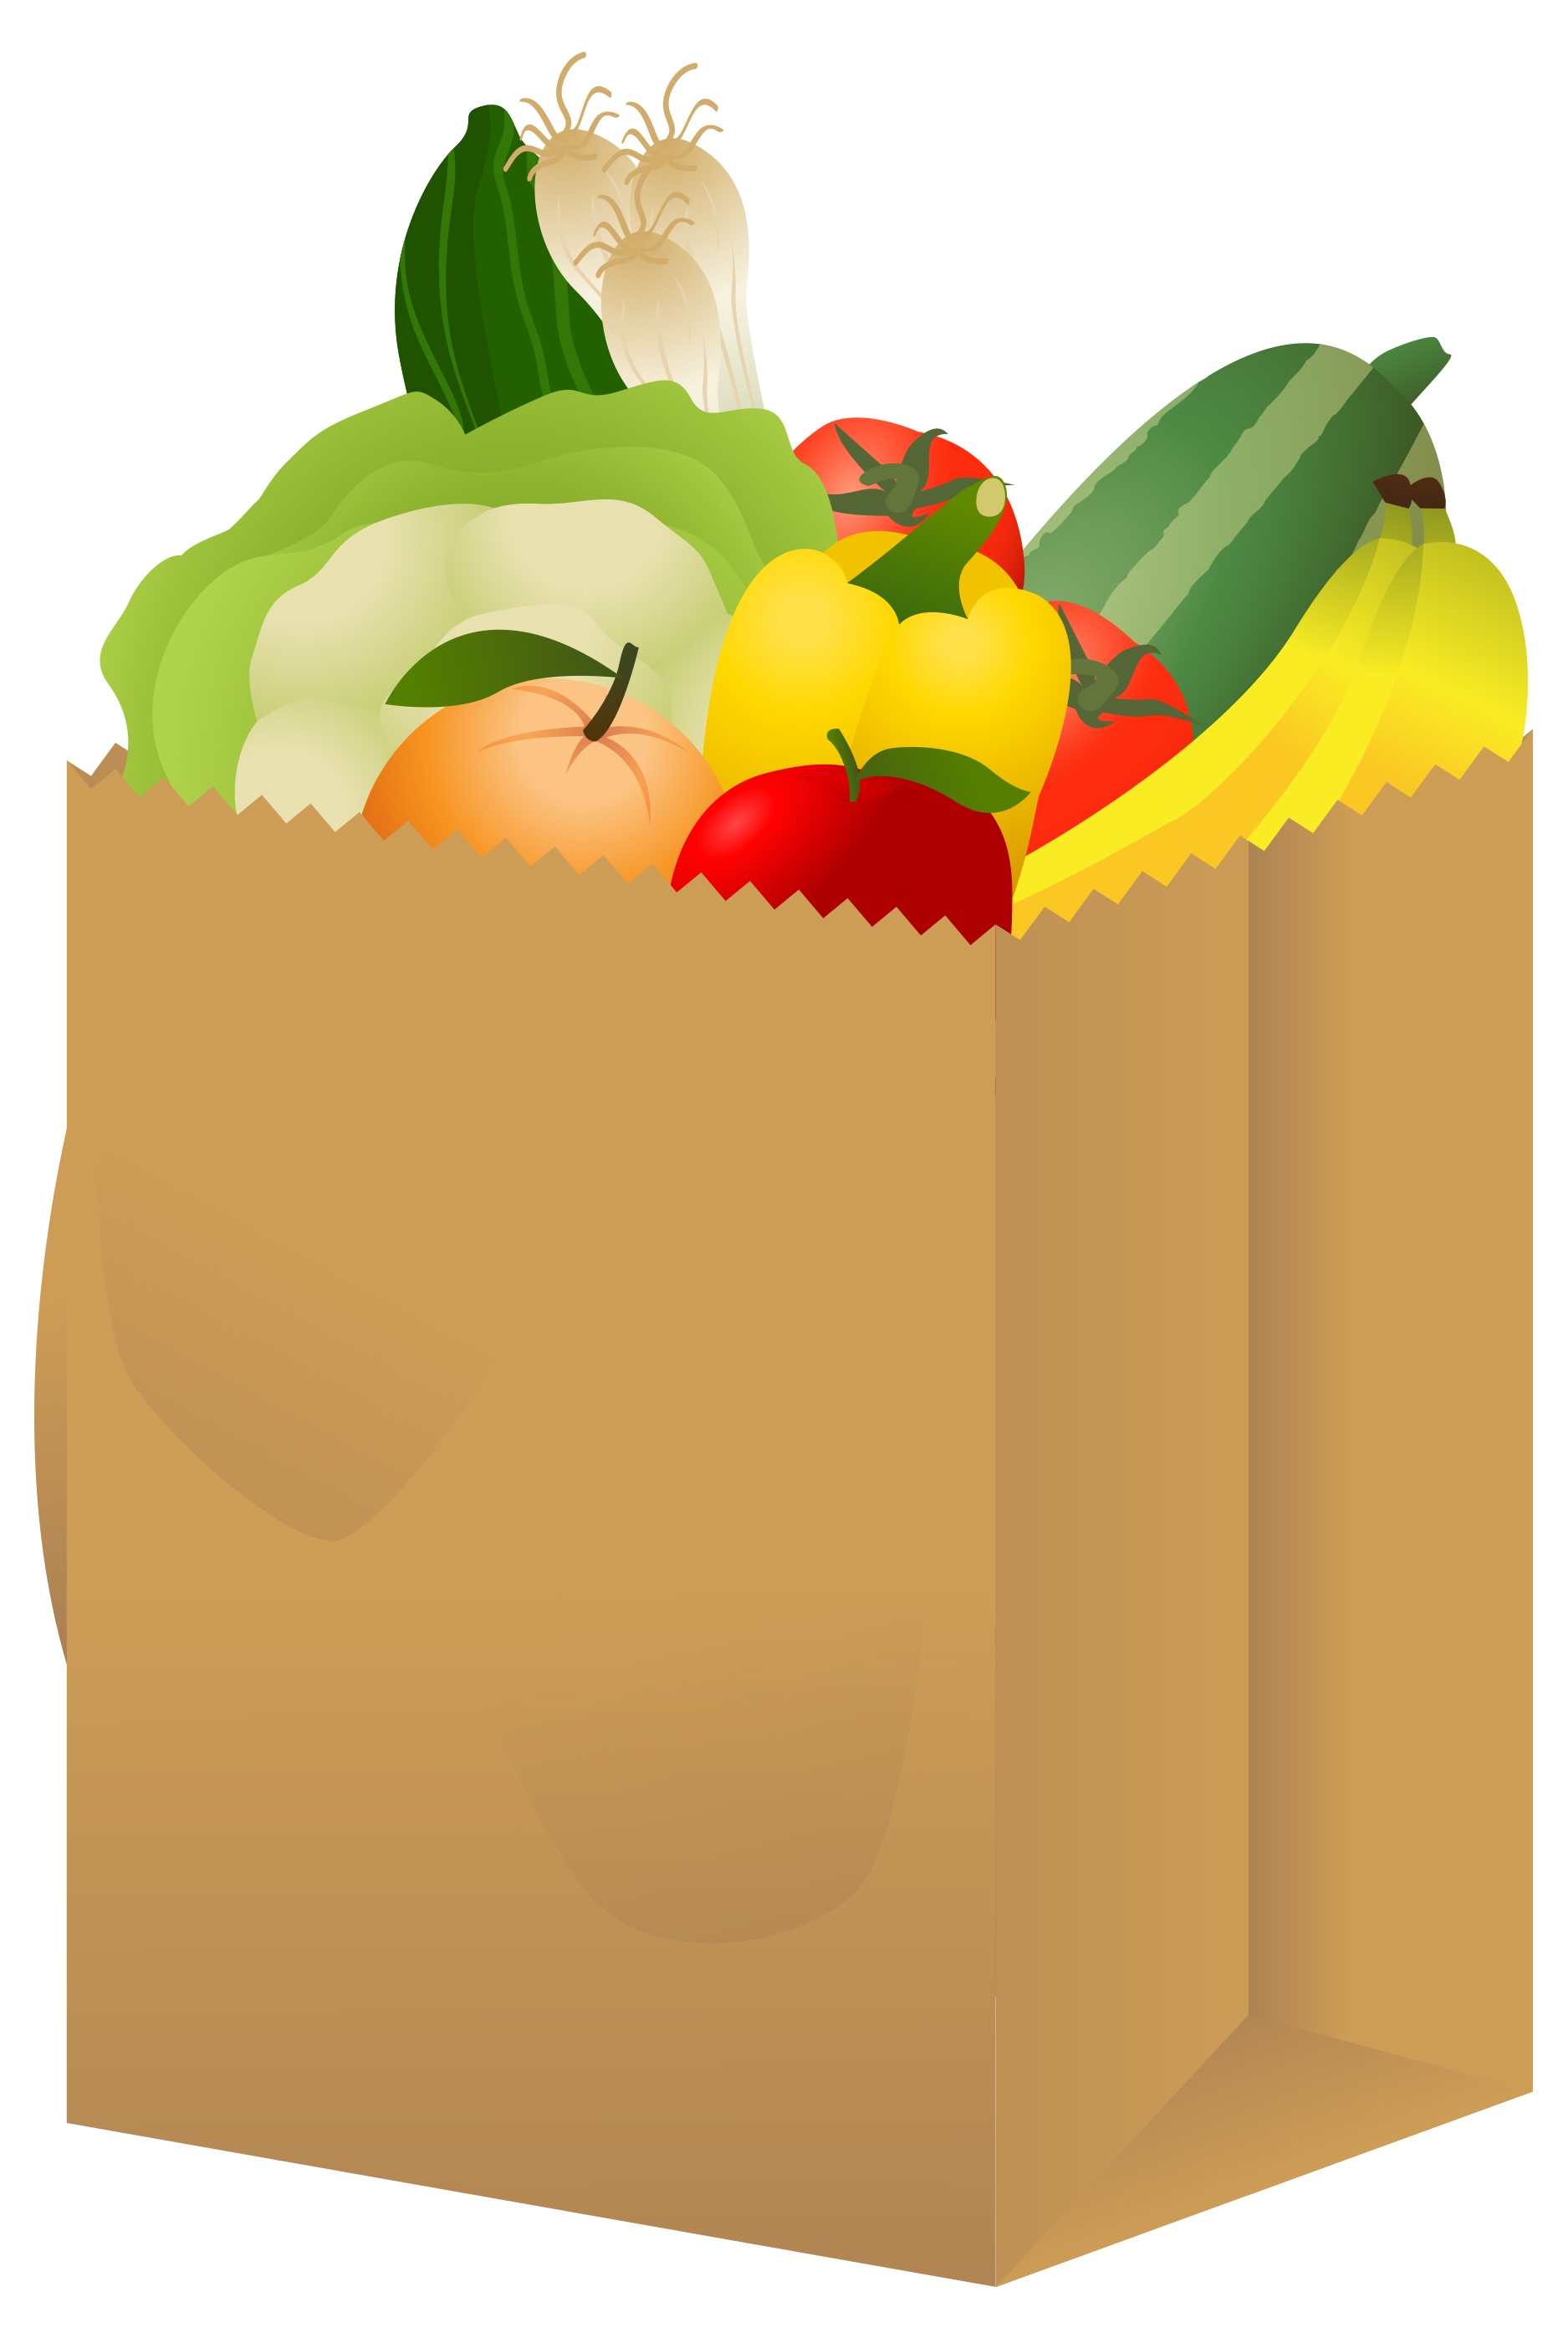 1875x2795 Groceries Clipart